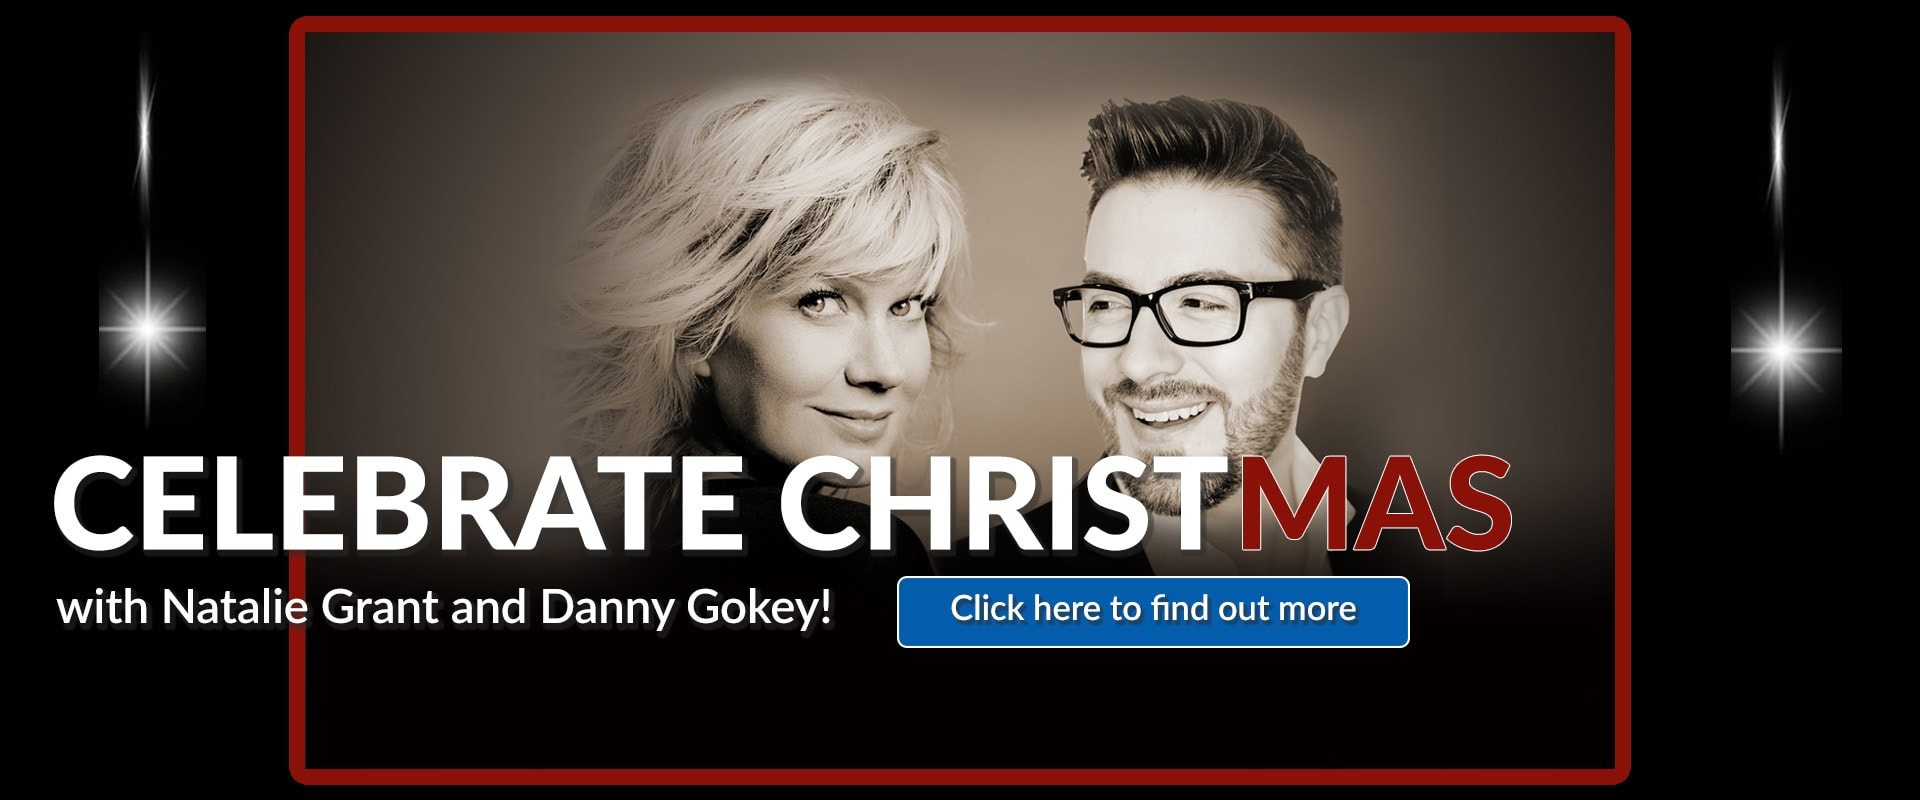 91.3 KGLY East Texas Christian Radio 2017 Celebrate Christmas with Natalie Grant and Danny Gokey